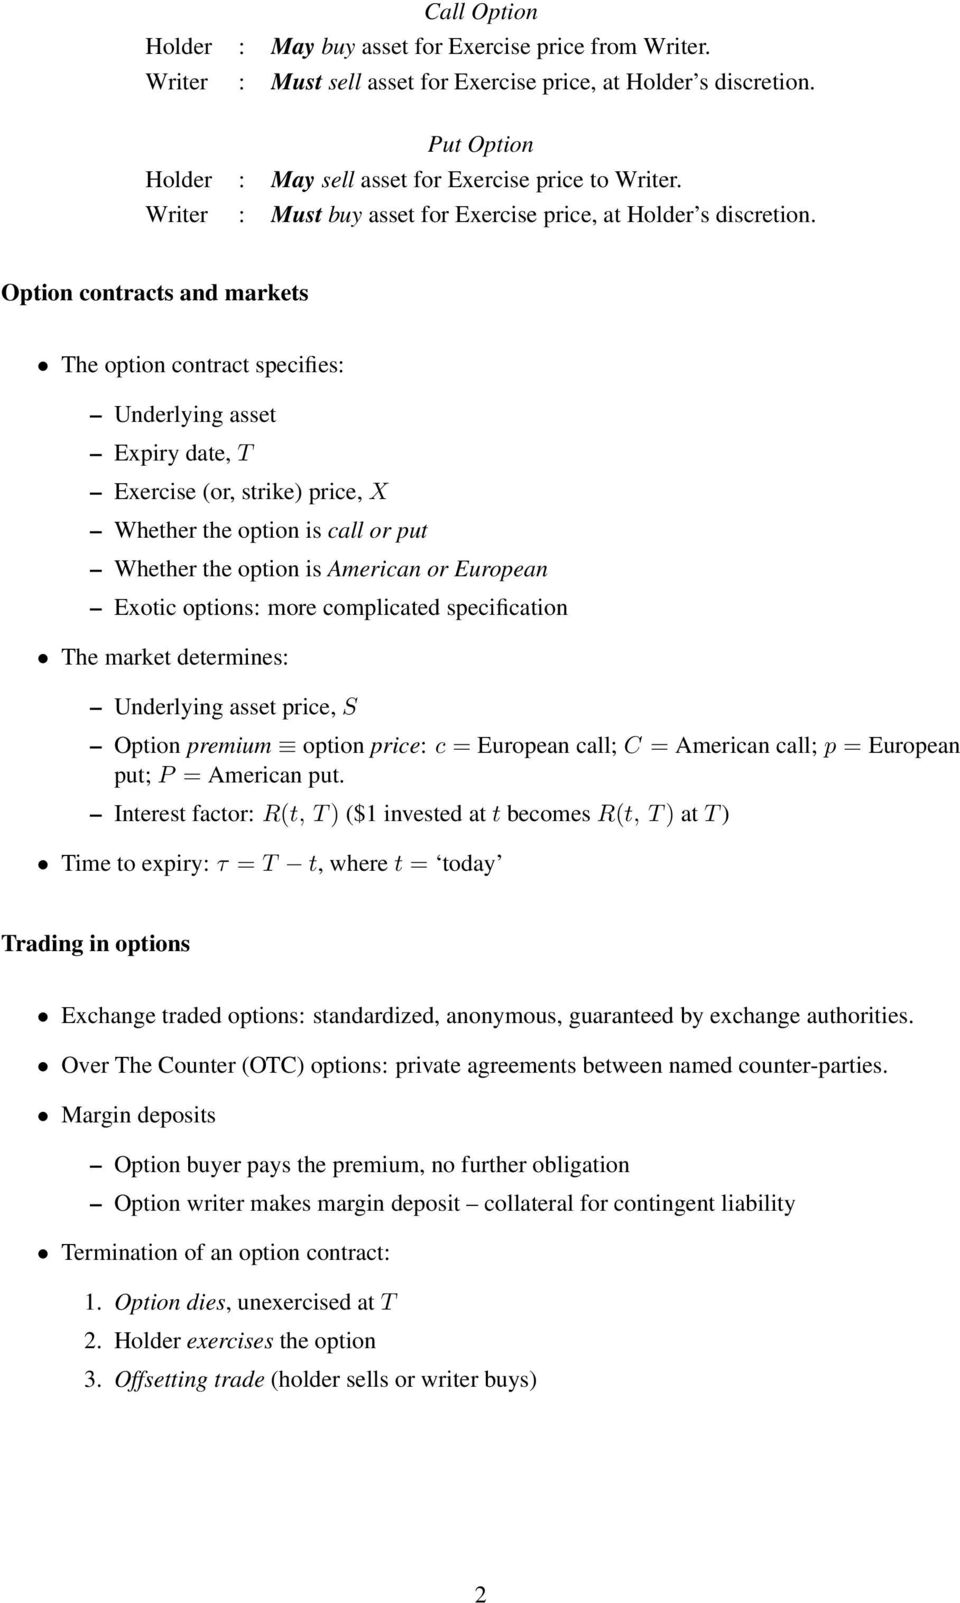 Option contracts and markets The option contract specifies: Underlying asset Expiry date, T Exercise (or, strike) price, Whether the option is call or put Whether the option is American or European